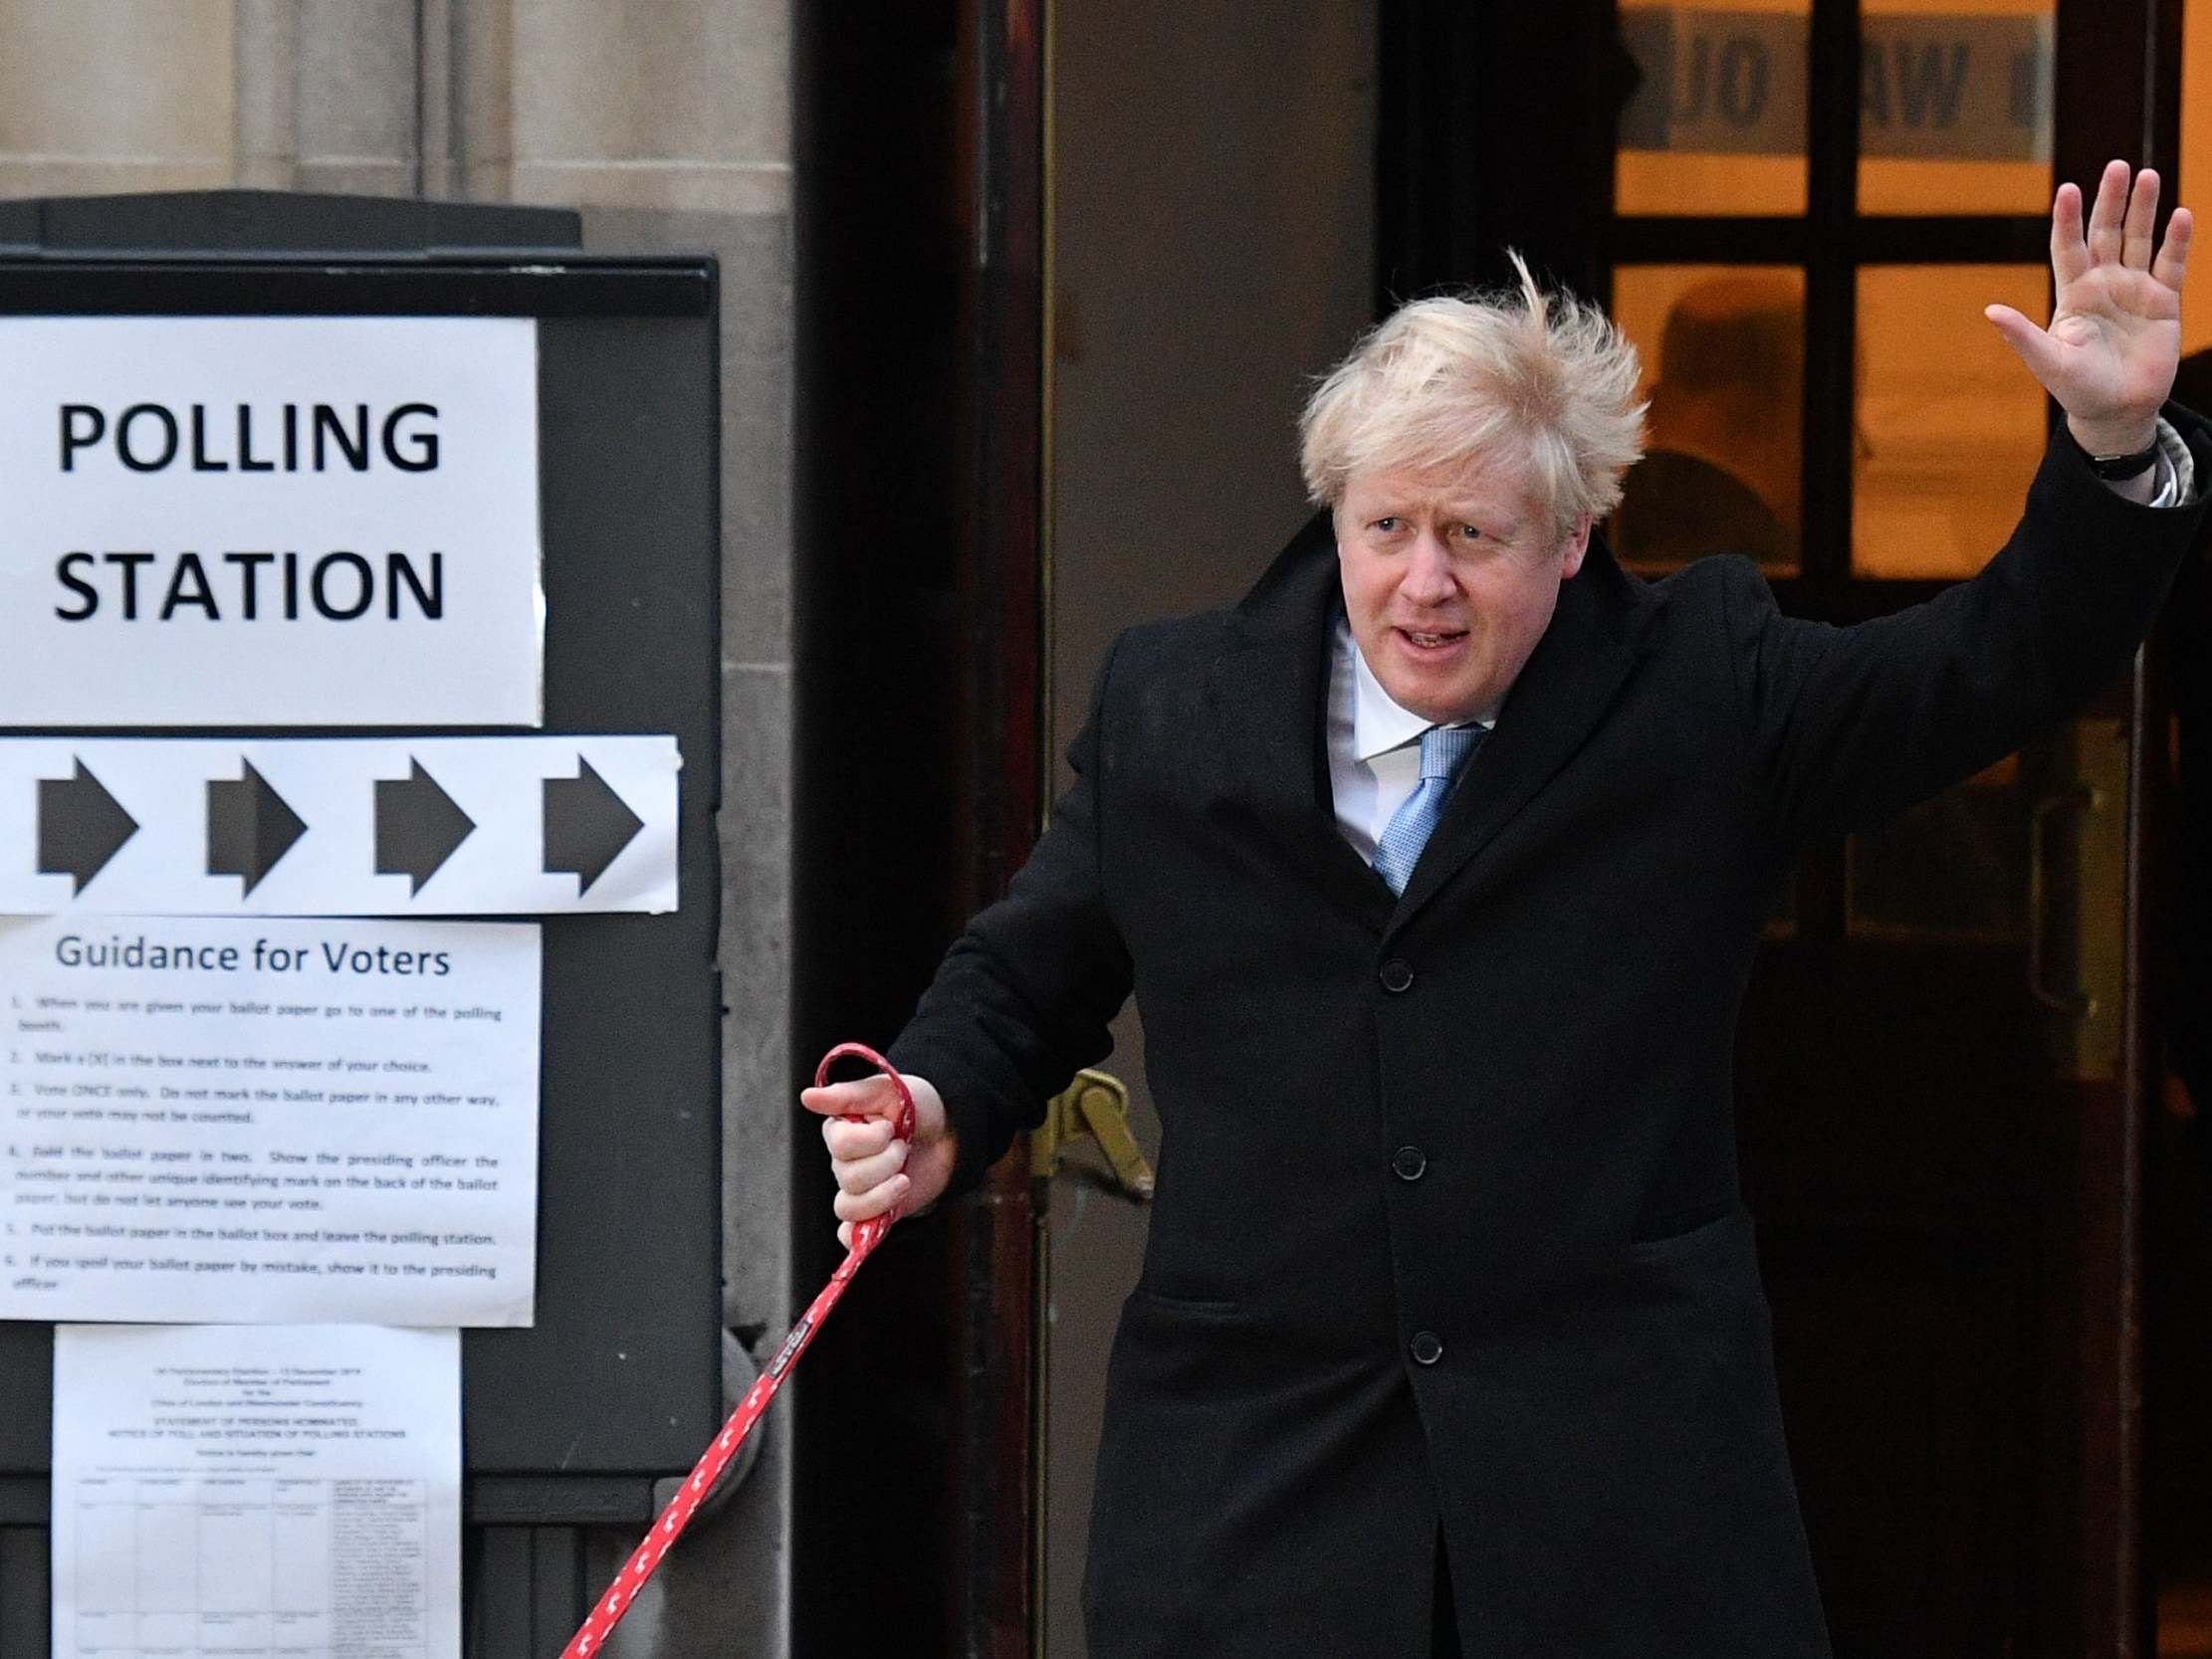 Boris Johnson may be prime minister for a long time - but he is likely to be the last PM of a united kingdom